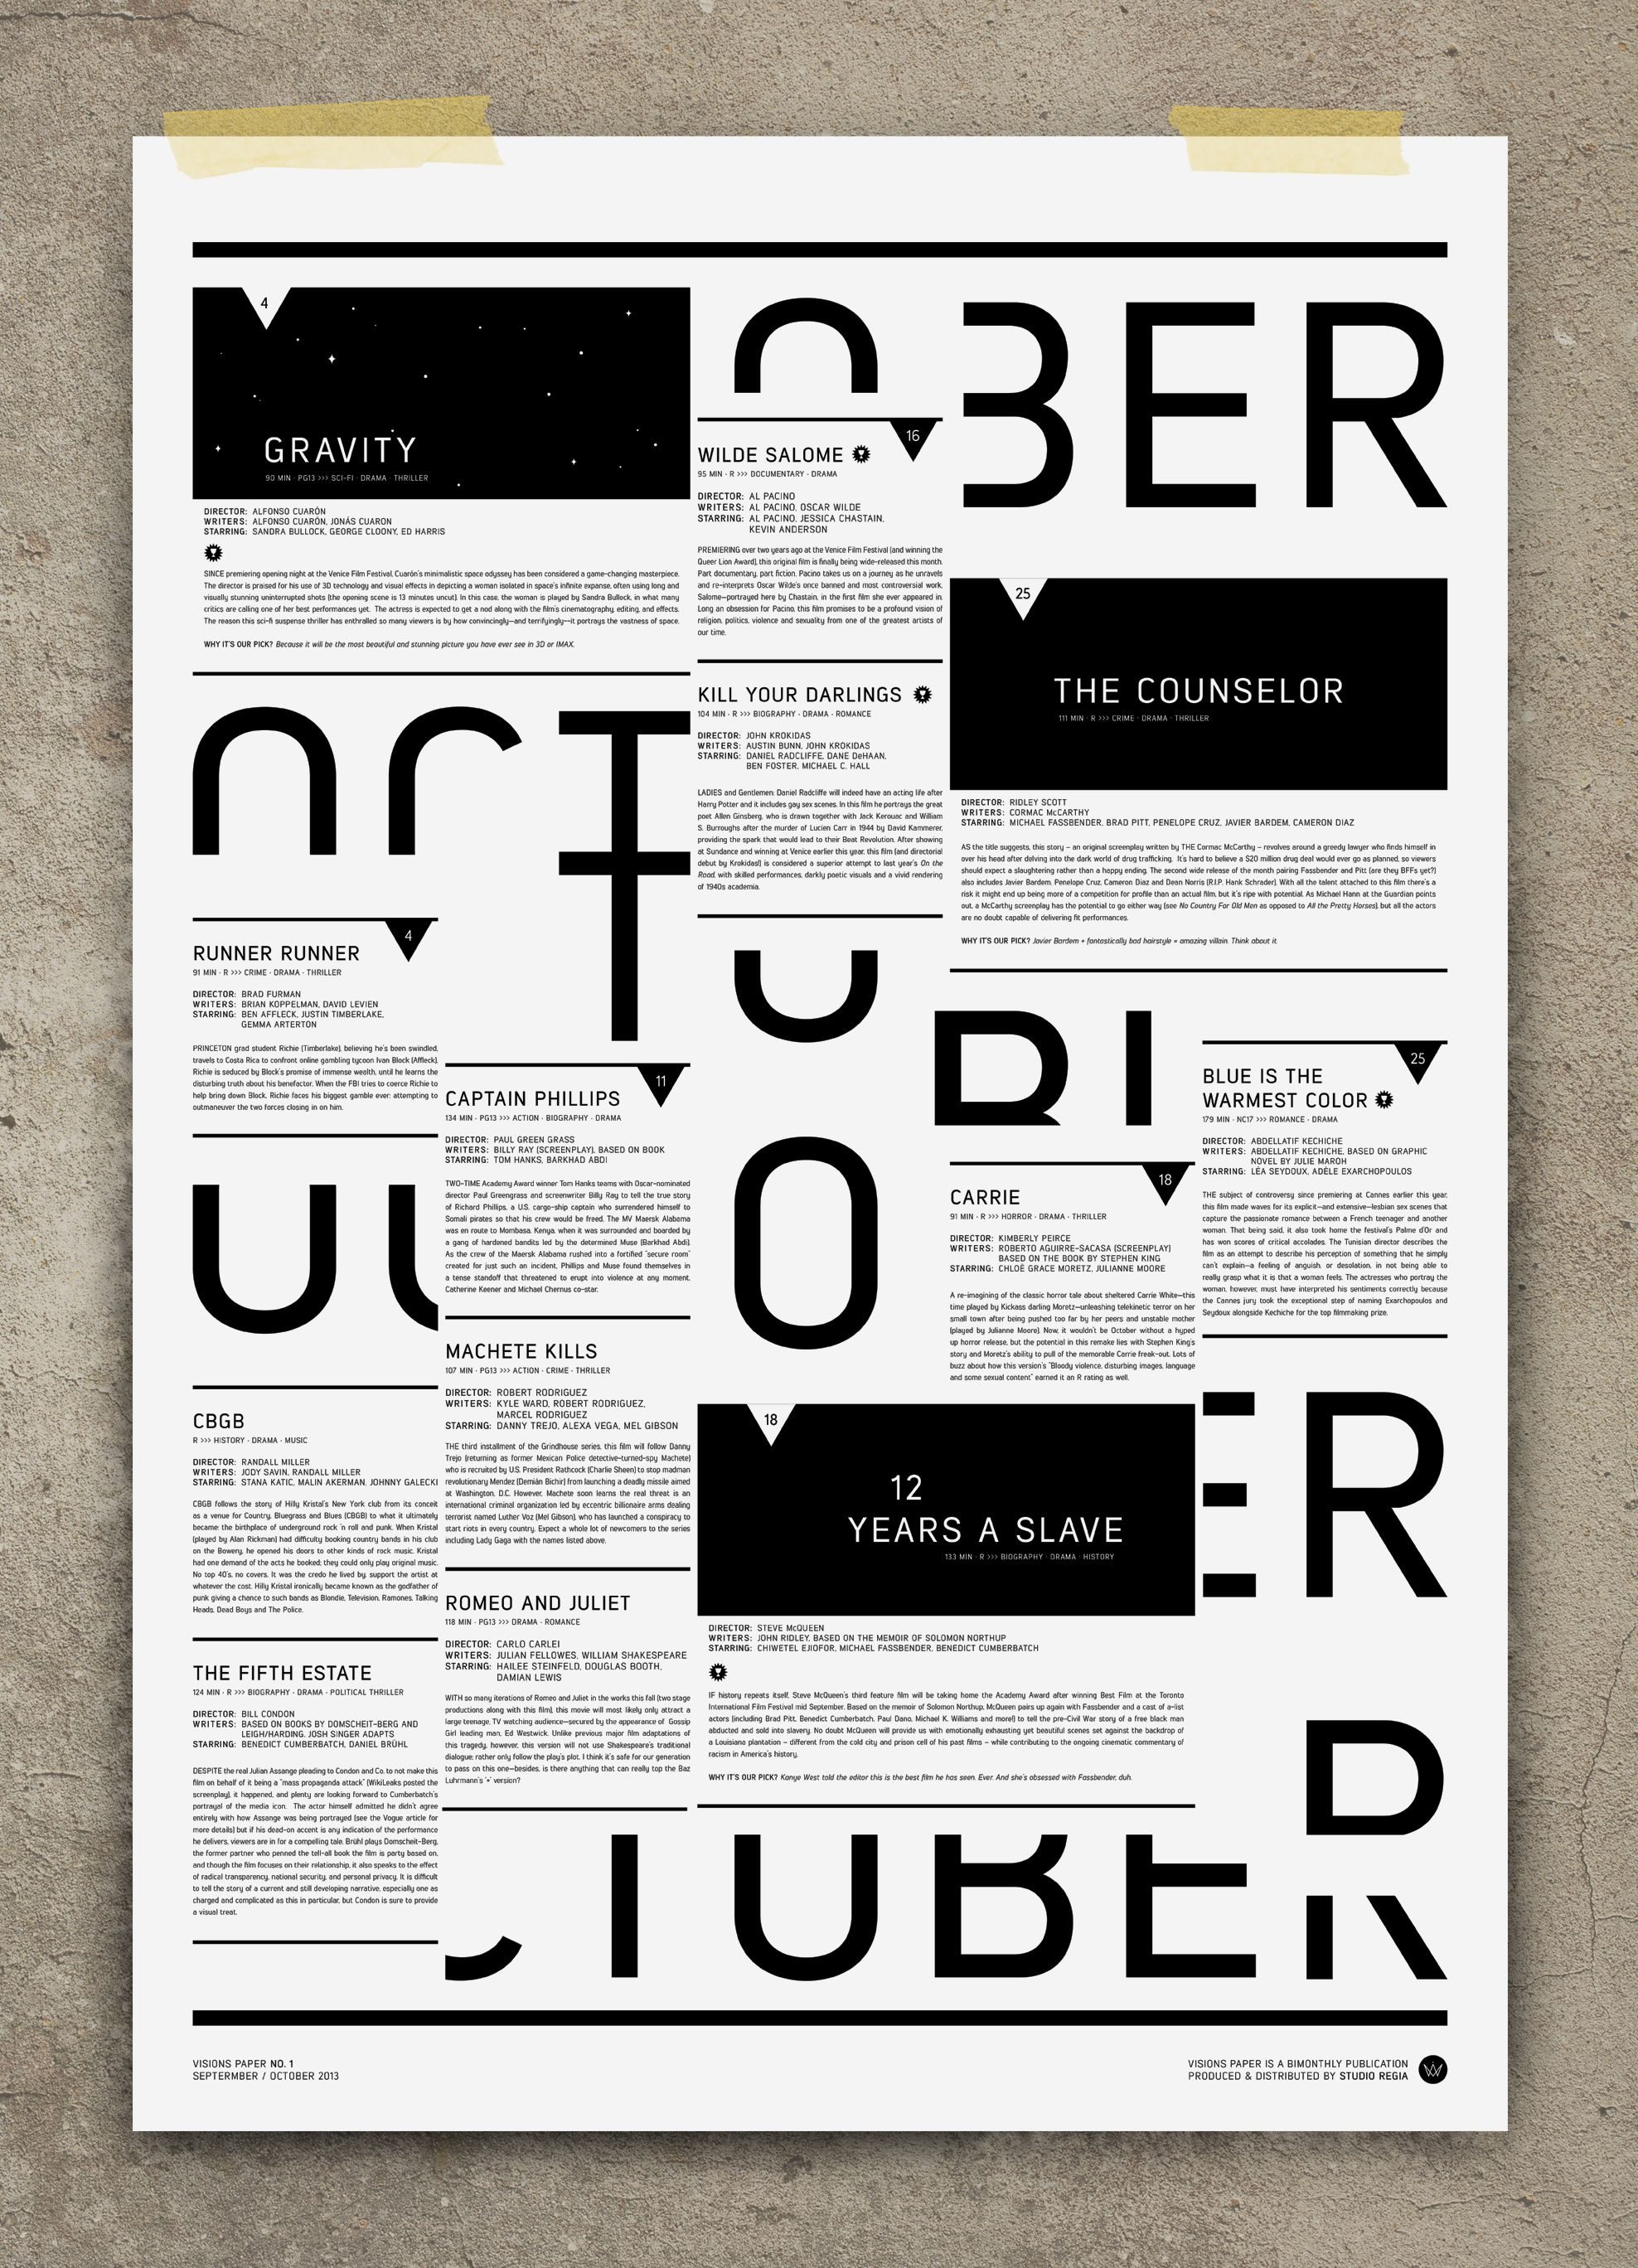 Poster design grid - Find This Pin And More On Posters By Timmurray